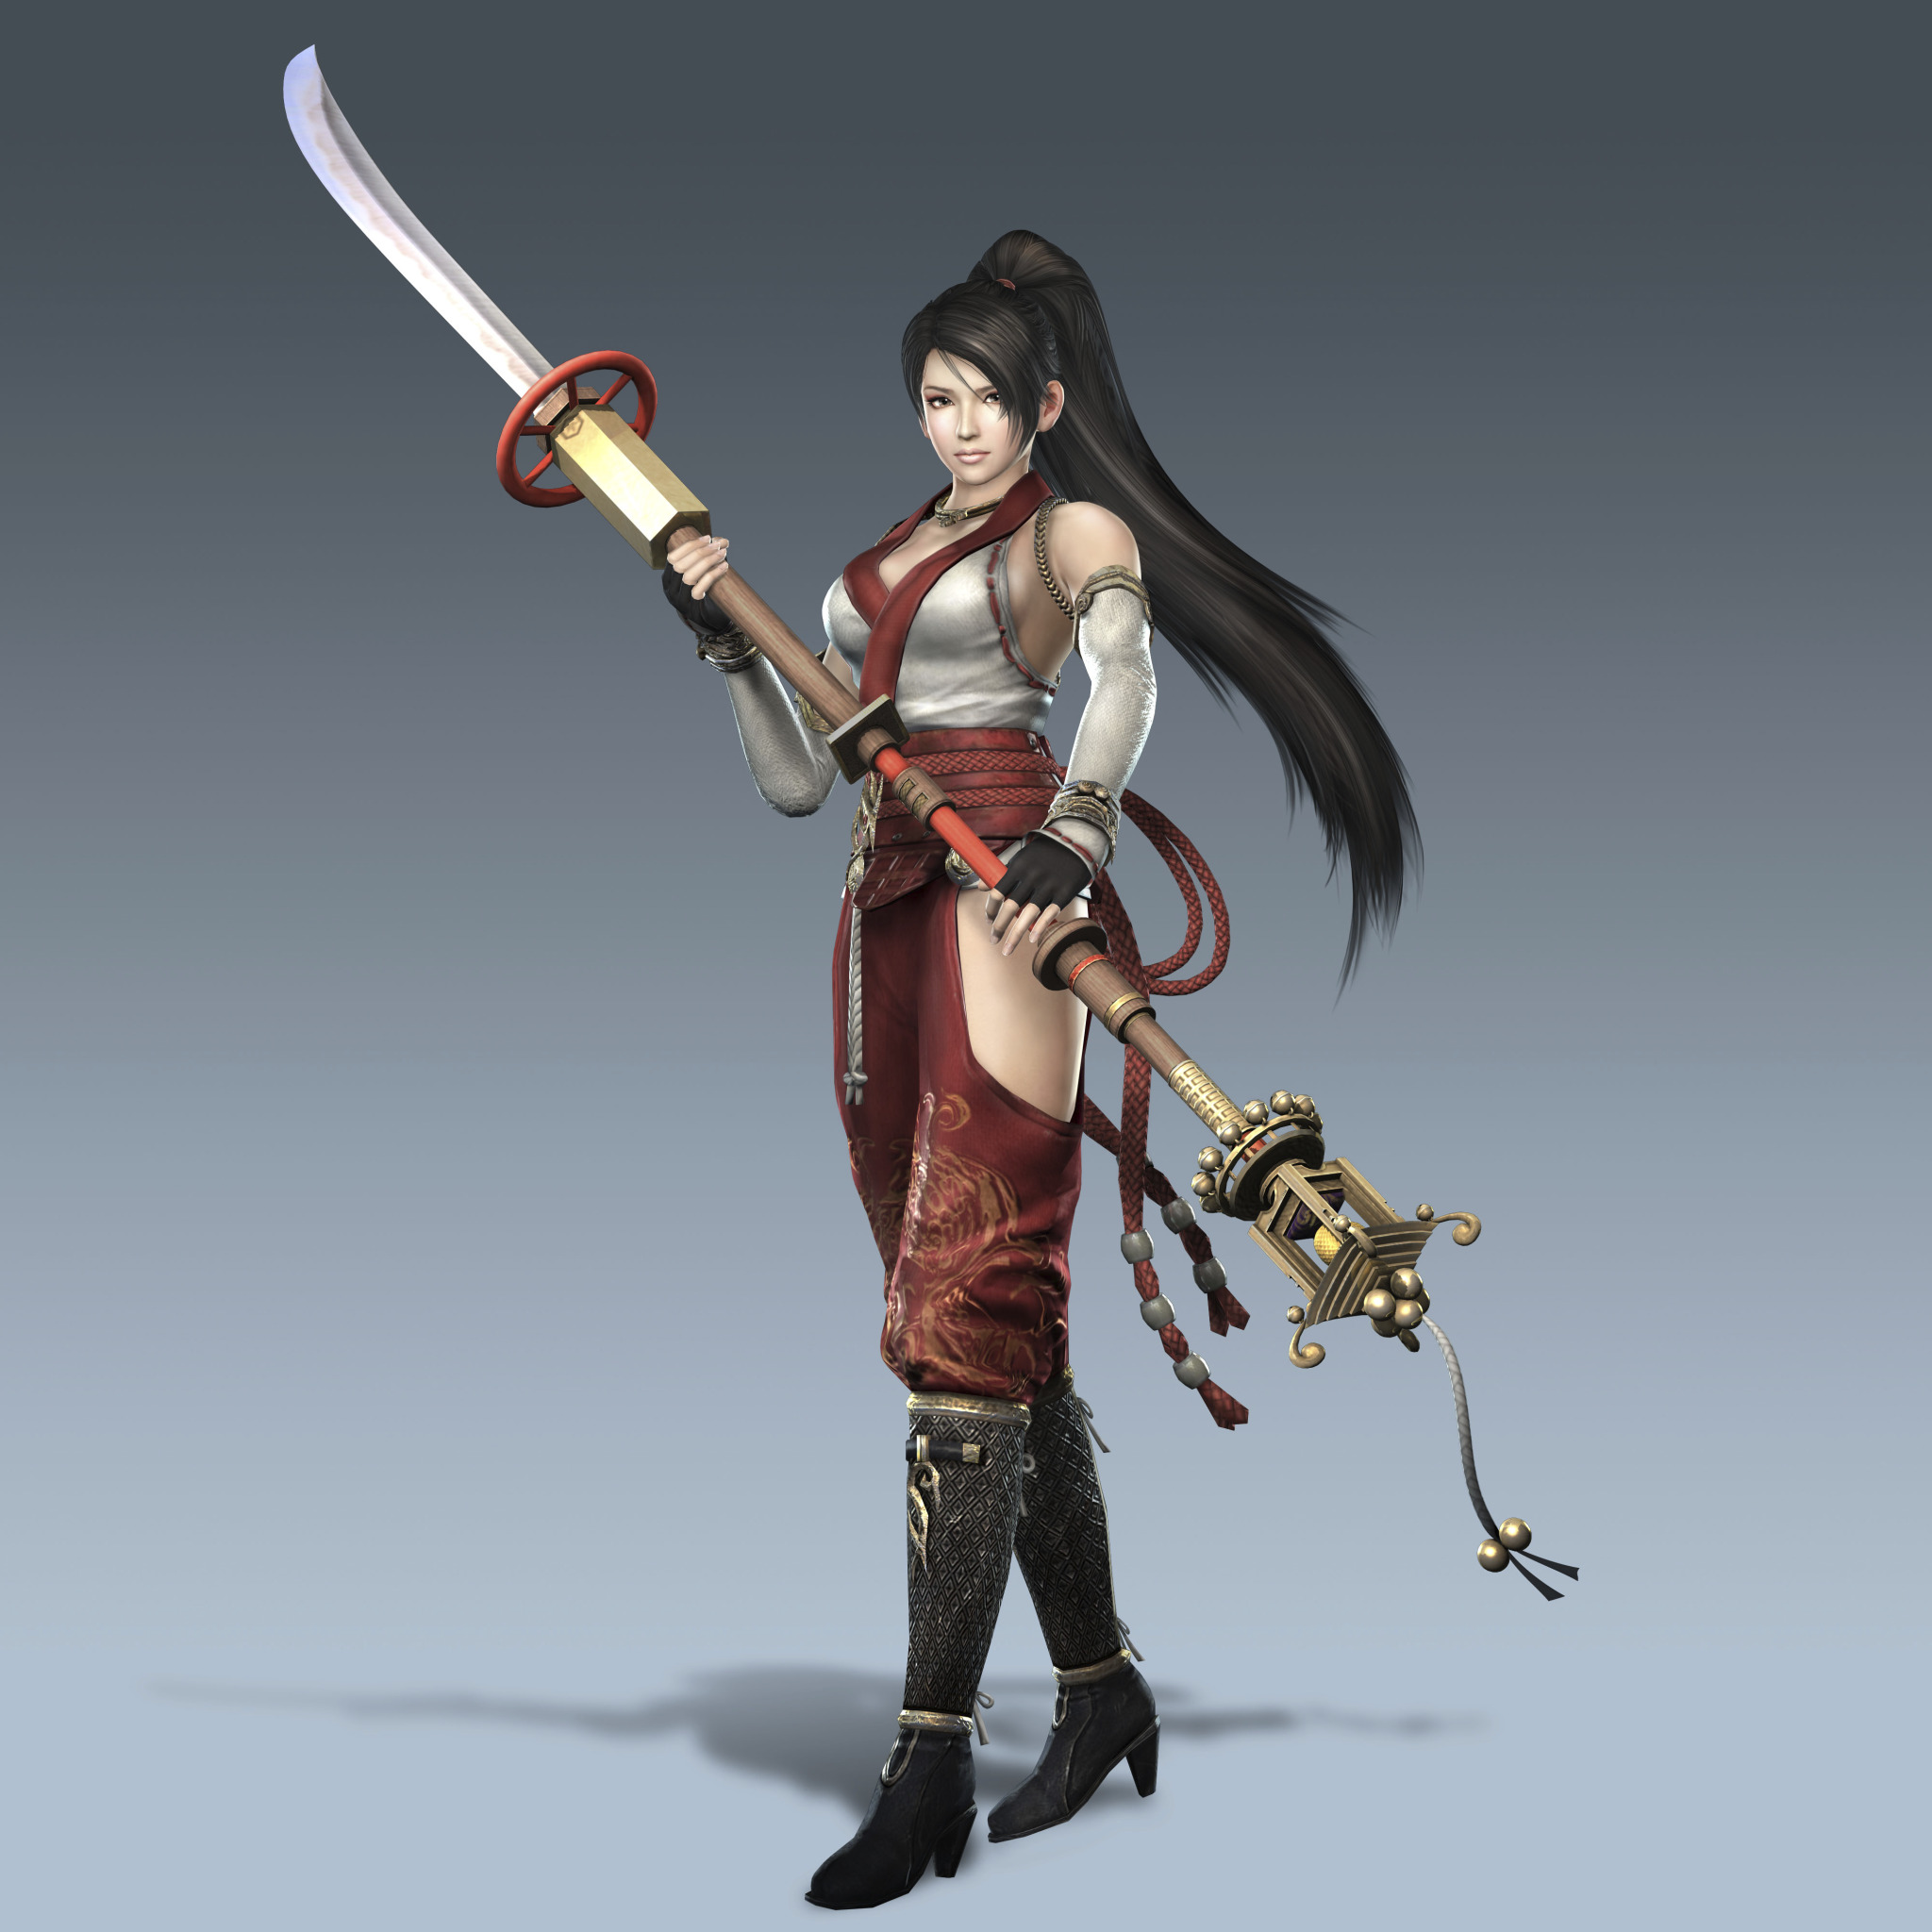 Warriors orochi 3 ultimate da ji hentai sex images